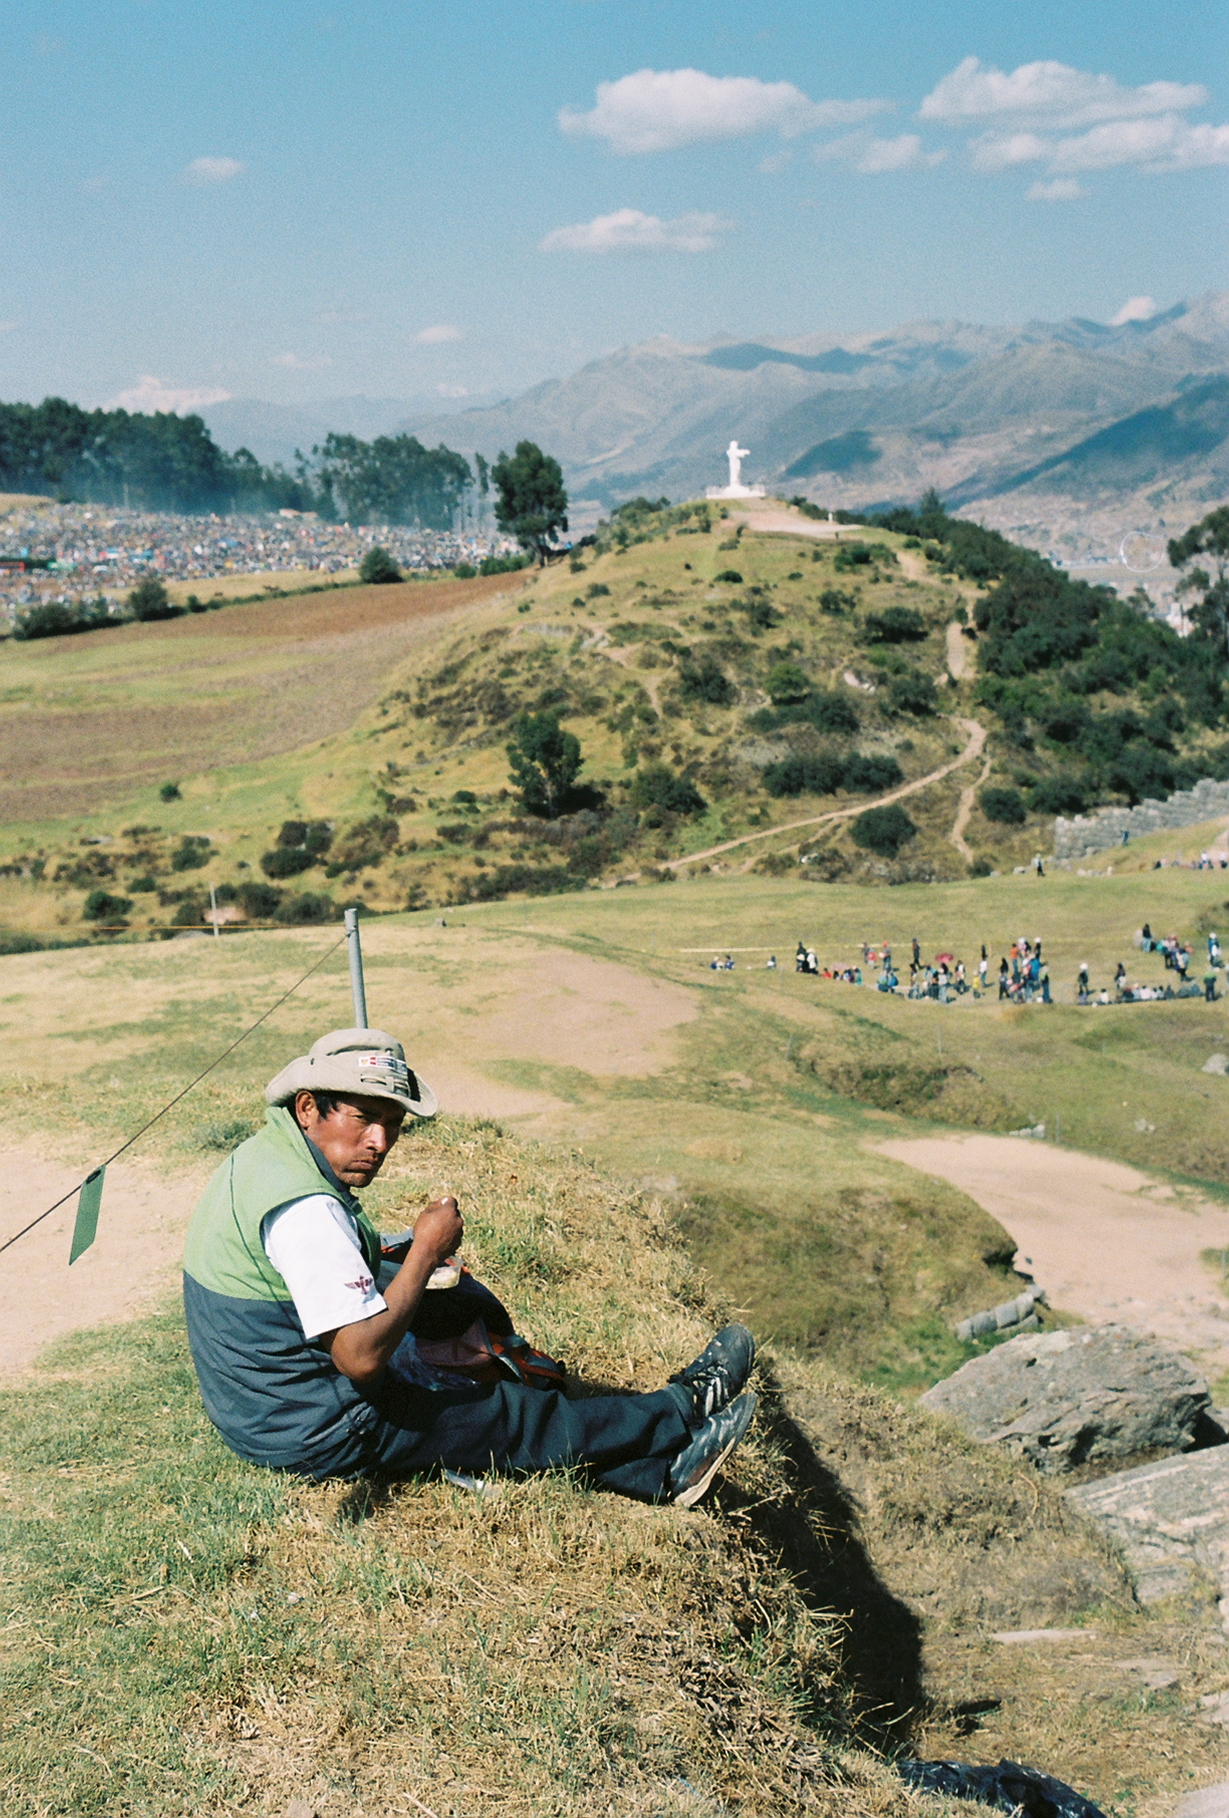 (June 24th 2015) A local finds a spot away from the crowd for a lunch break during the ceremonial events of Inti Ryami, the Festival of the Sun, held at the top of the historical Incan fortress of Sacsayhuaman.